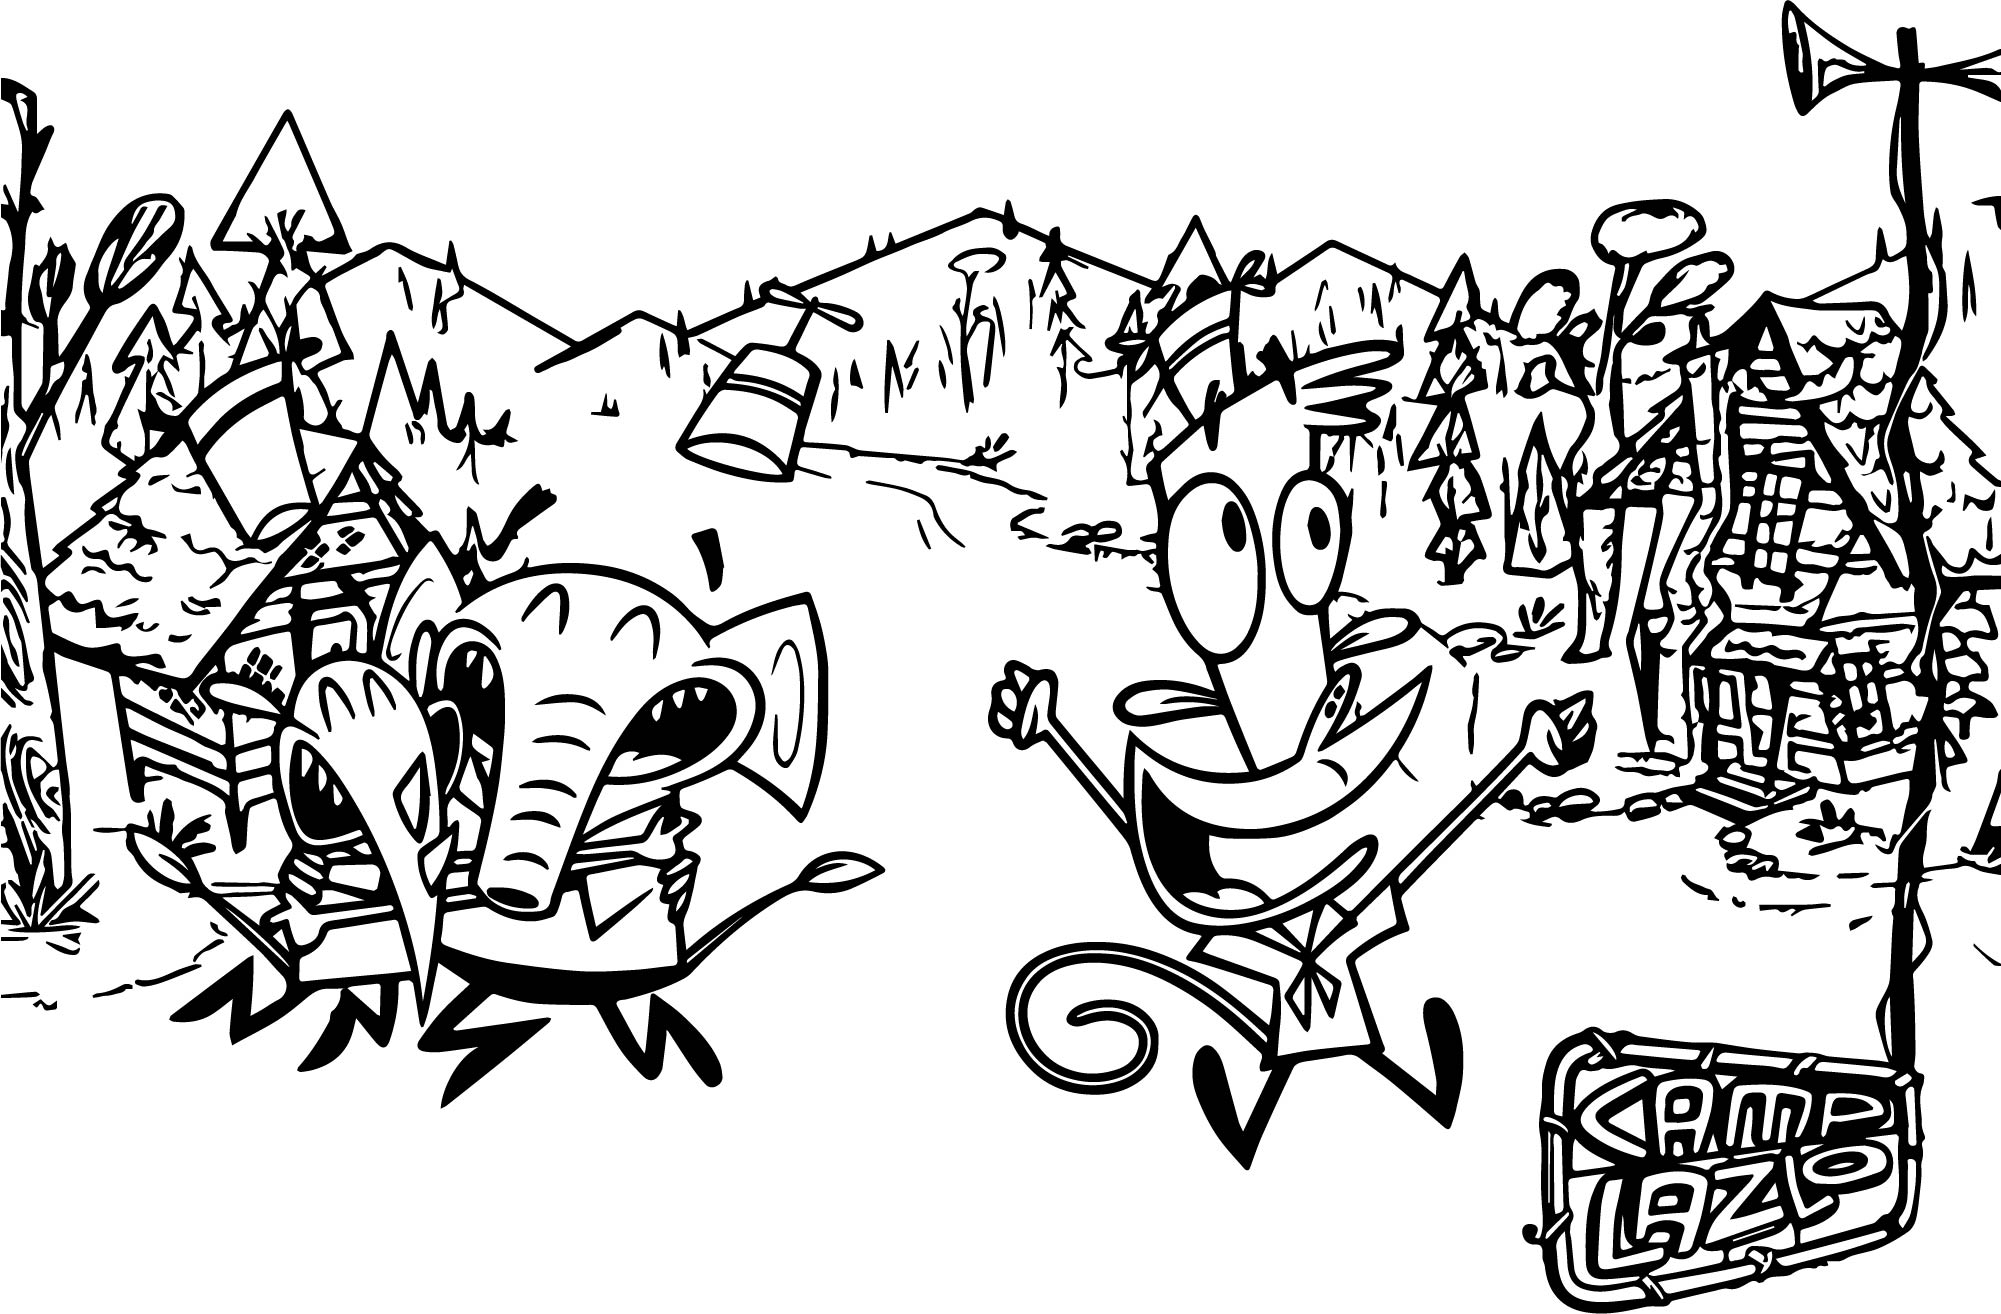 Camp Lakebottom Coloring Coloring Pages Coloring Pages